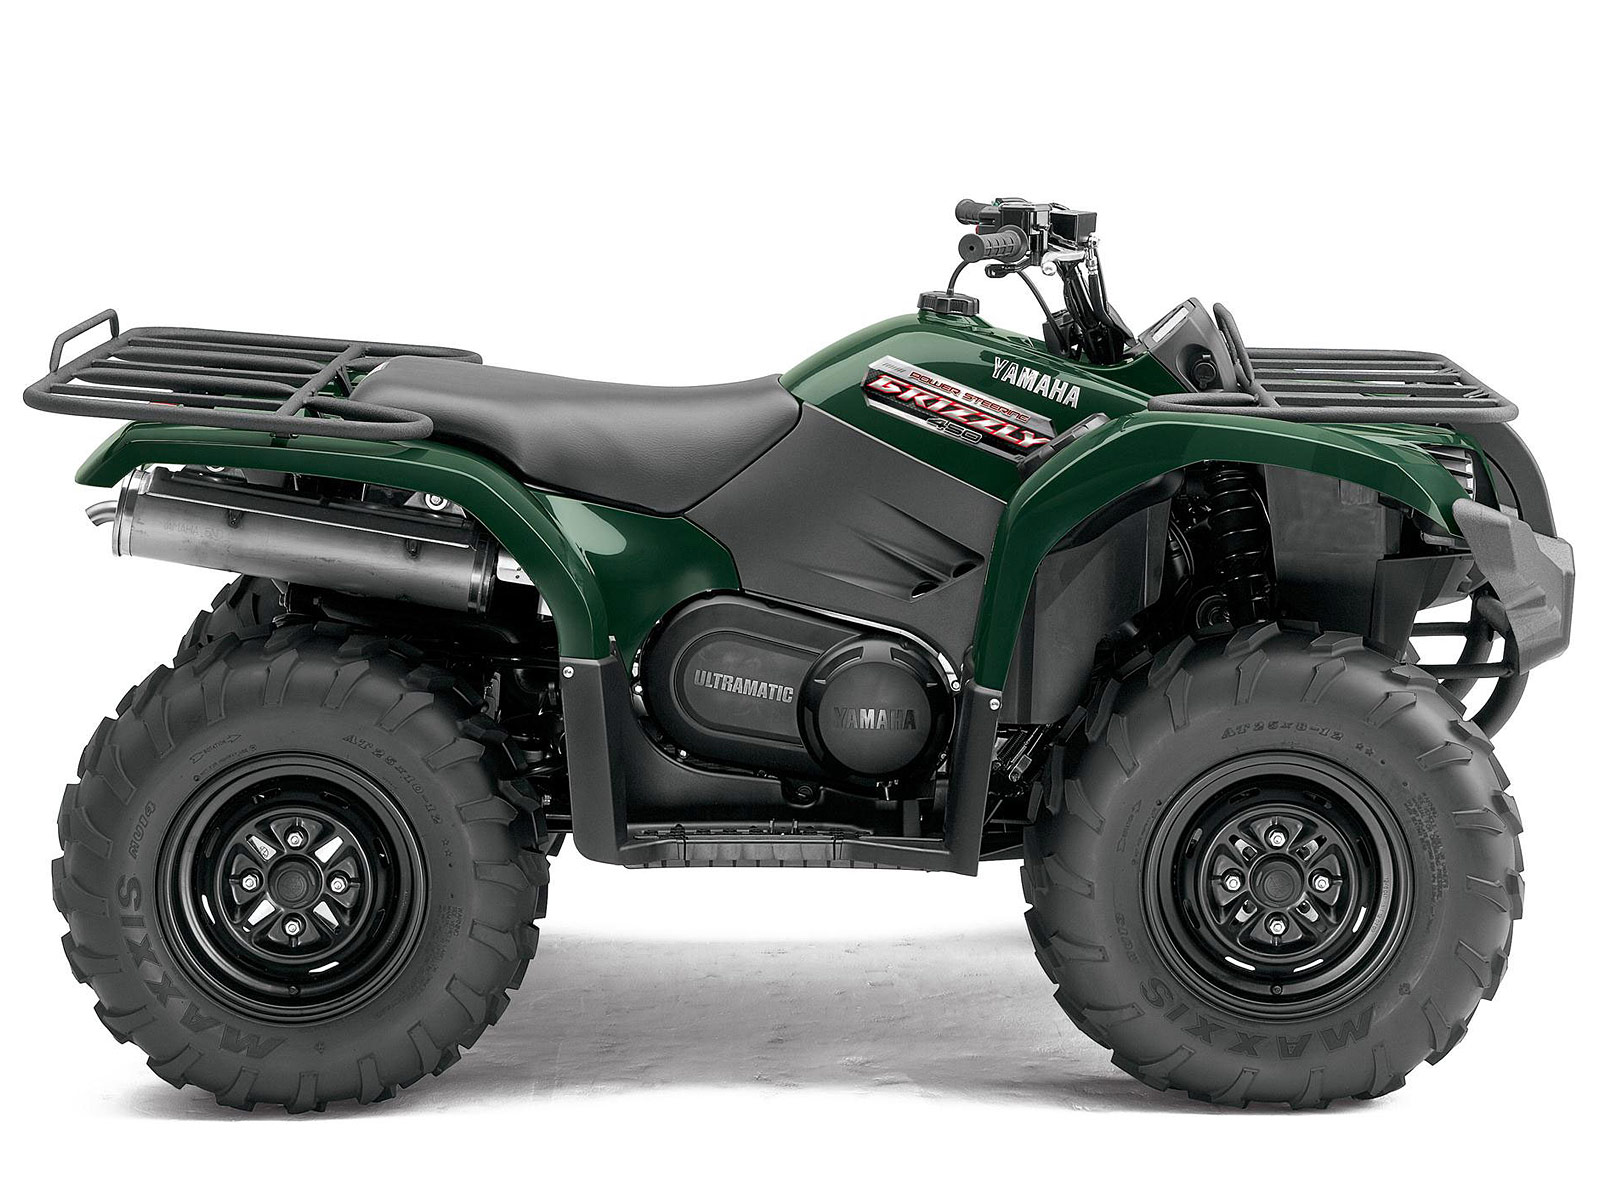 2013 grizzly 450 auto 4x4 eps yamaha atv pictures for Yamaha grizzly 4x4